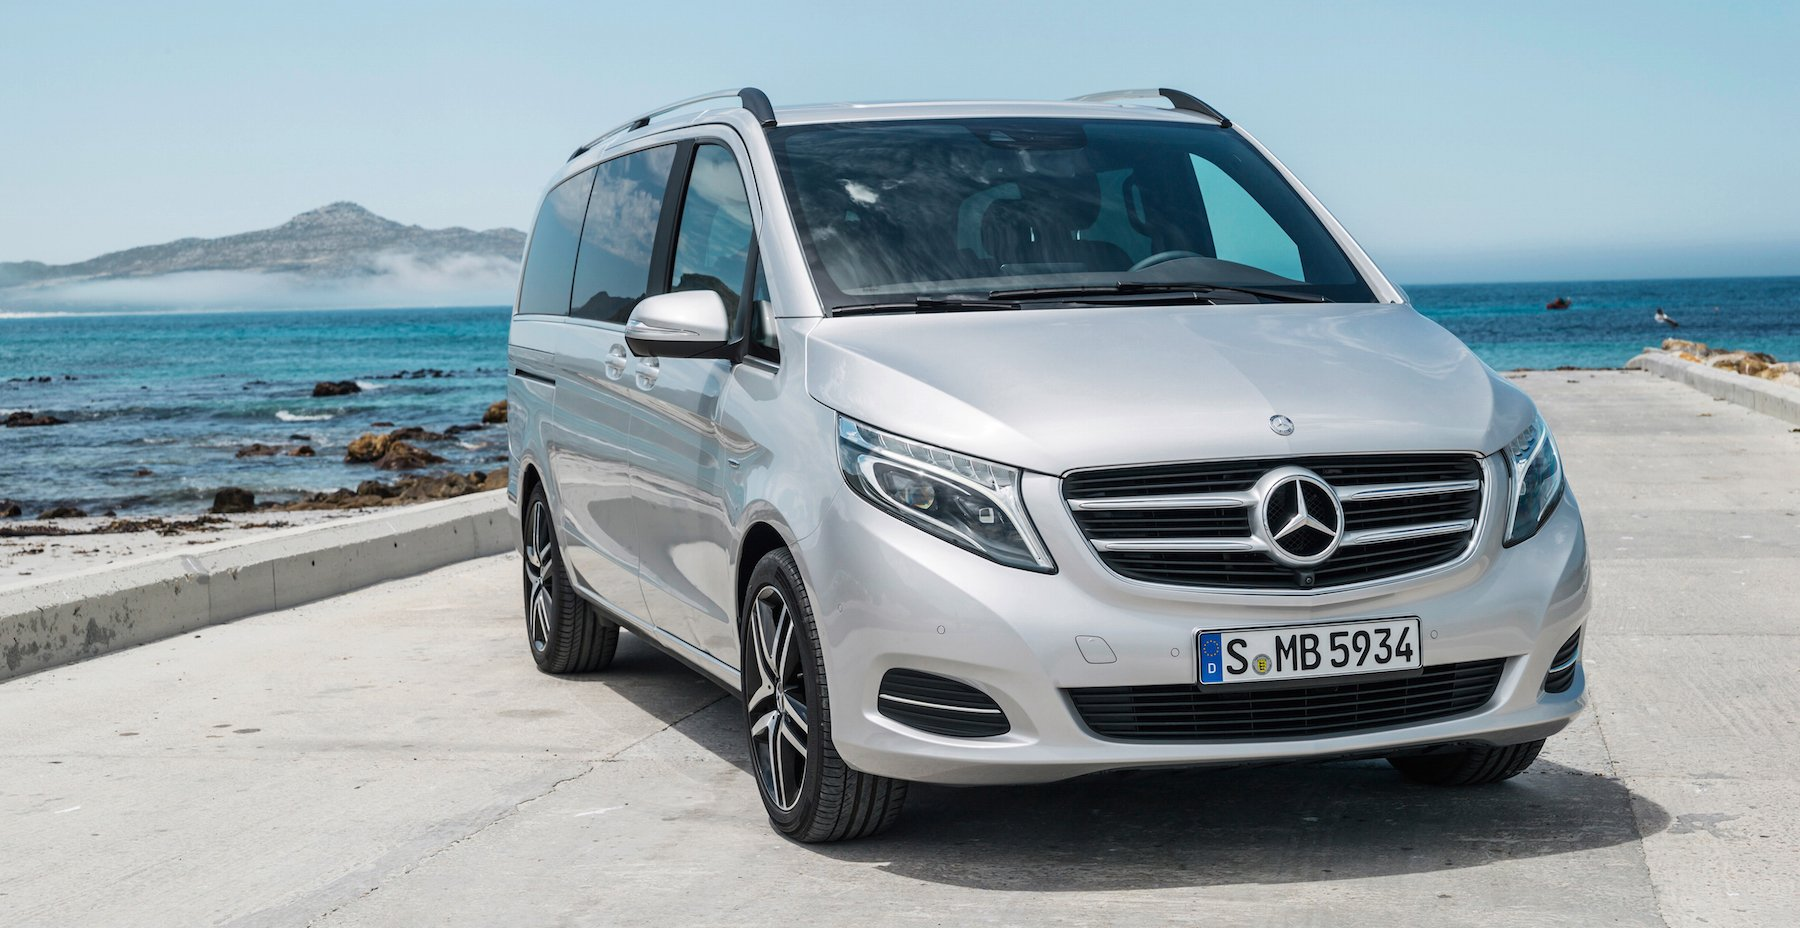 2015 mercedes benz v class pricing and specifications photos caradvice. Black Bedroom Furniture Sets. Home Design Ideas